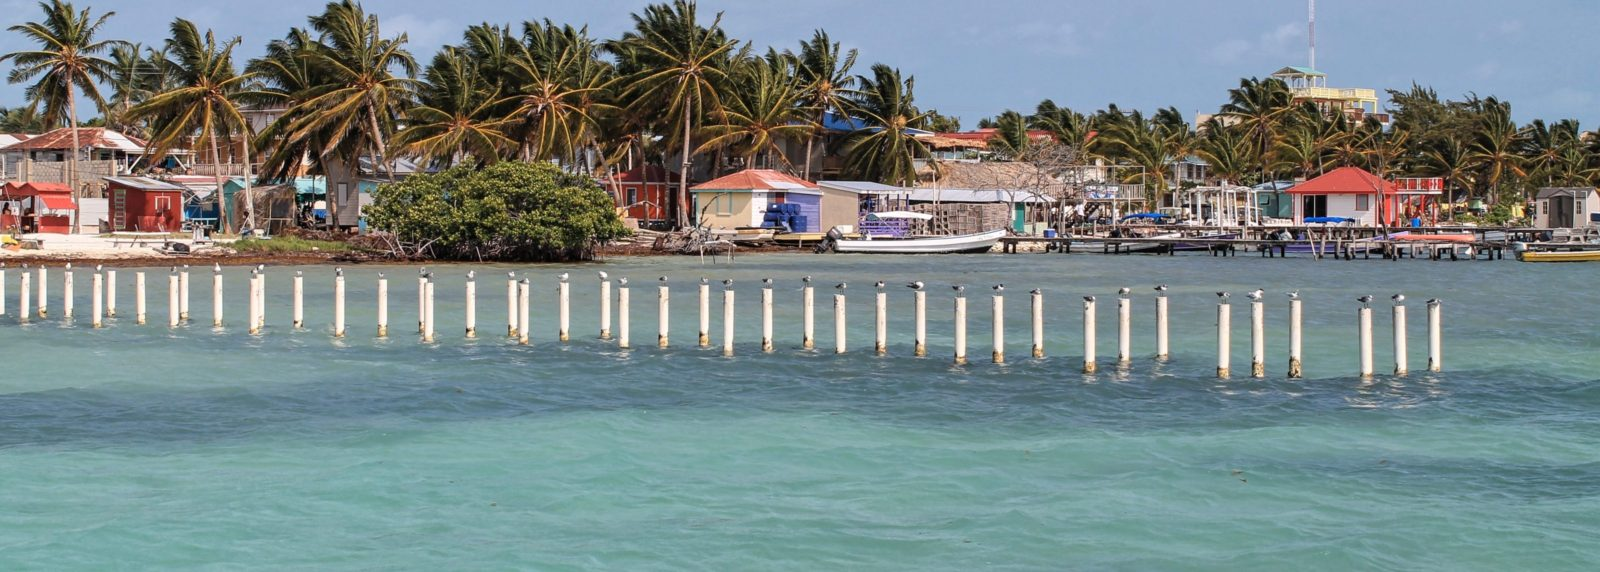 Caye Caulker offers beautiful coastlines with a relaxed atmosphere.